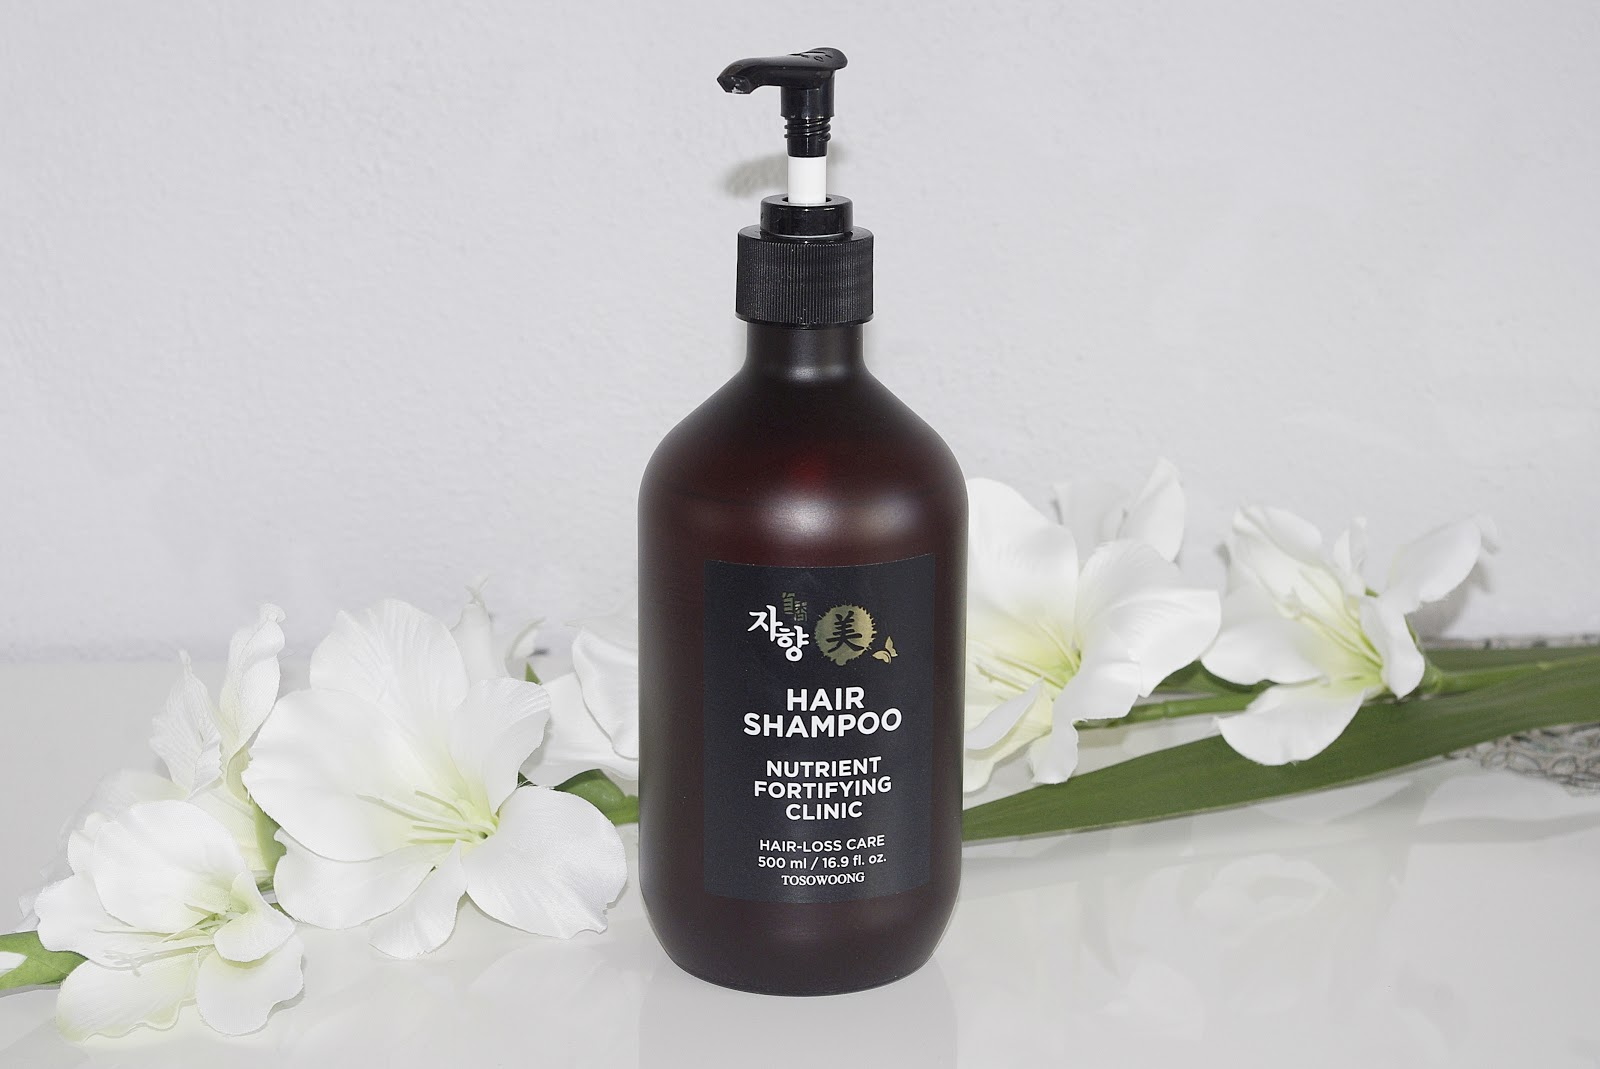 Tosowoong Nutrient Fortifying Clinic Hair Shampoo